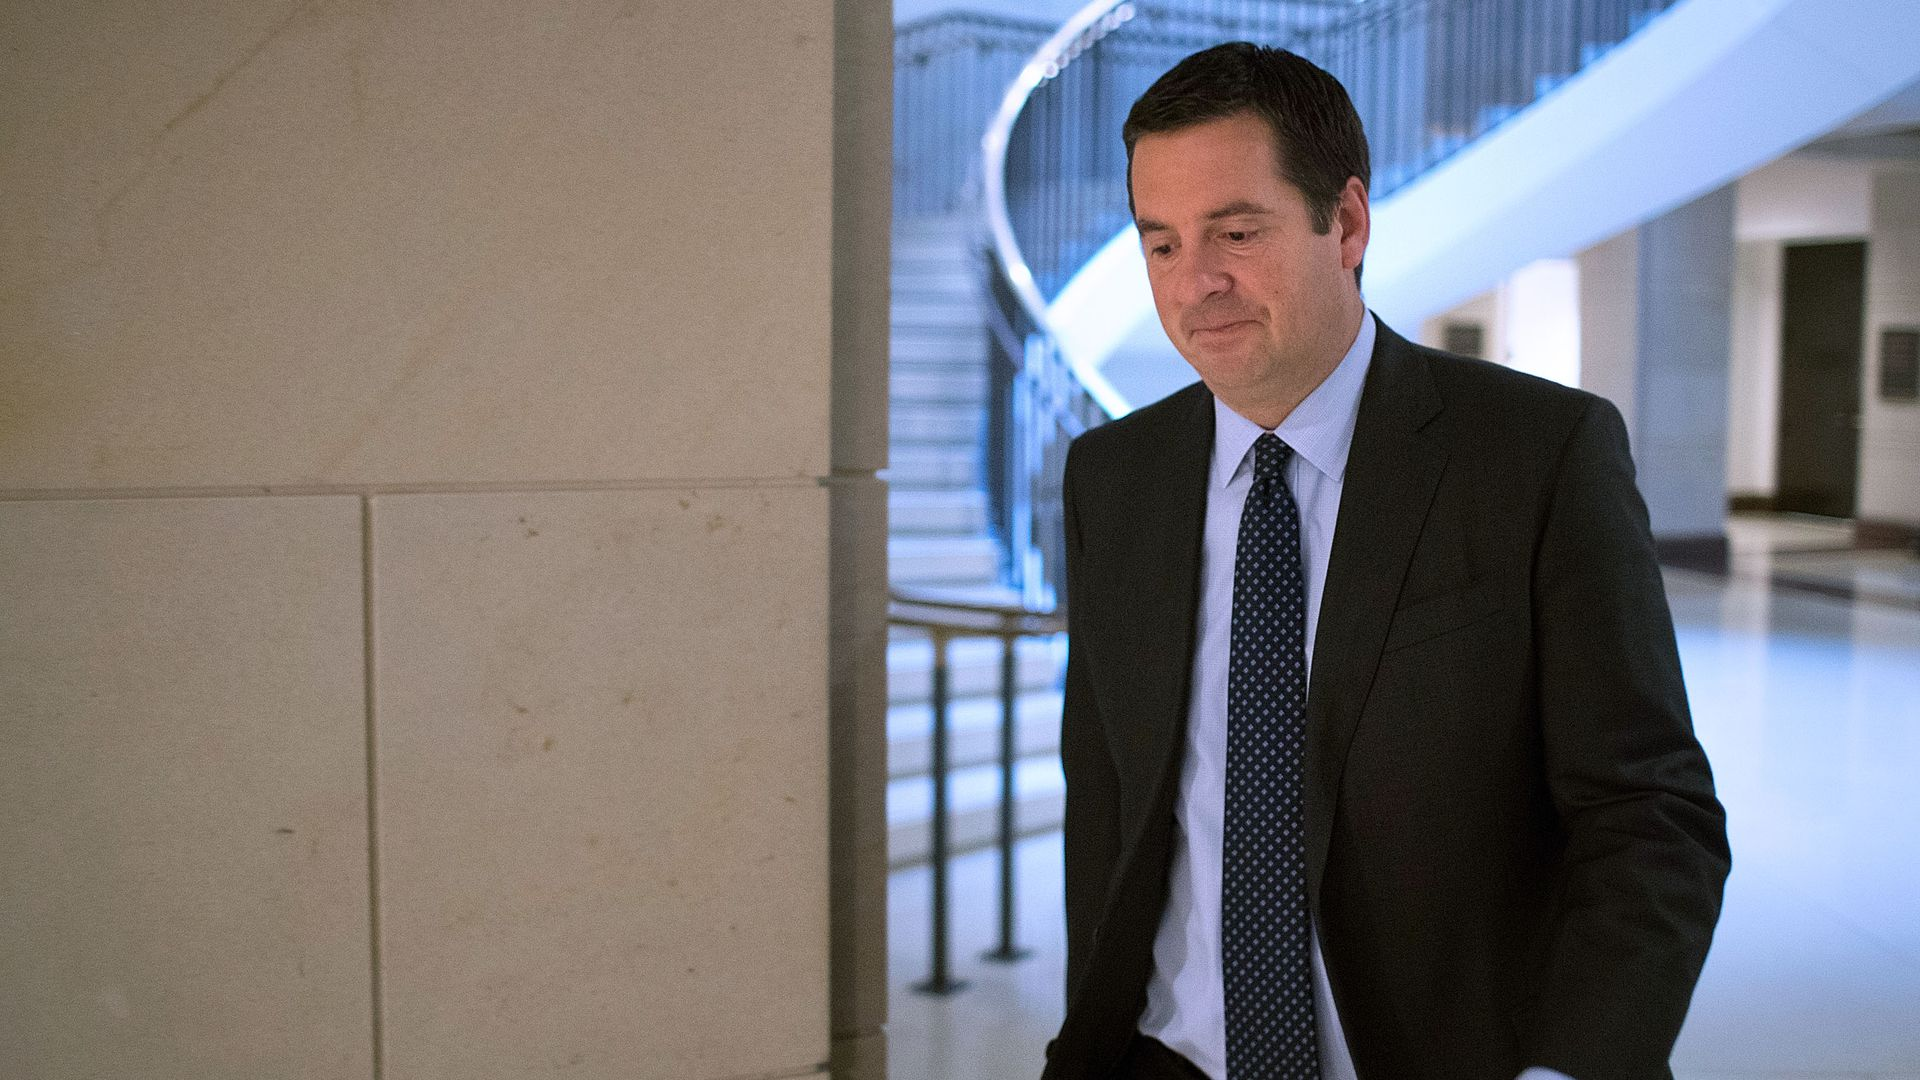 House Intelligence Committee Chairman Devin Nunes.